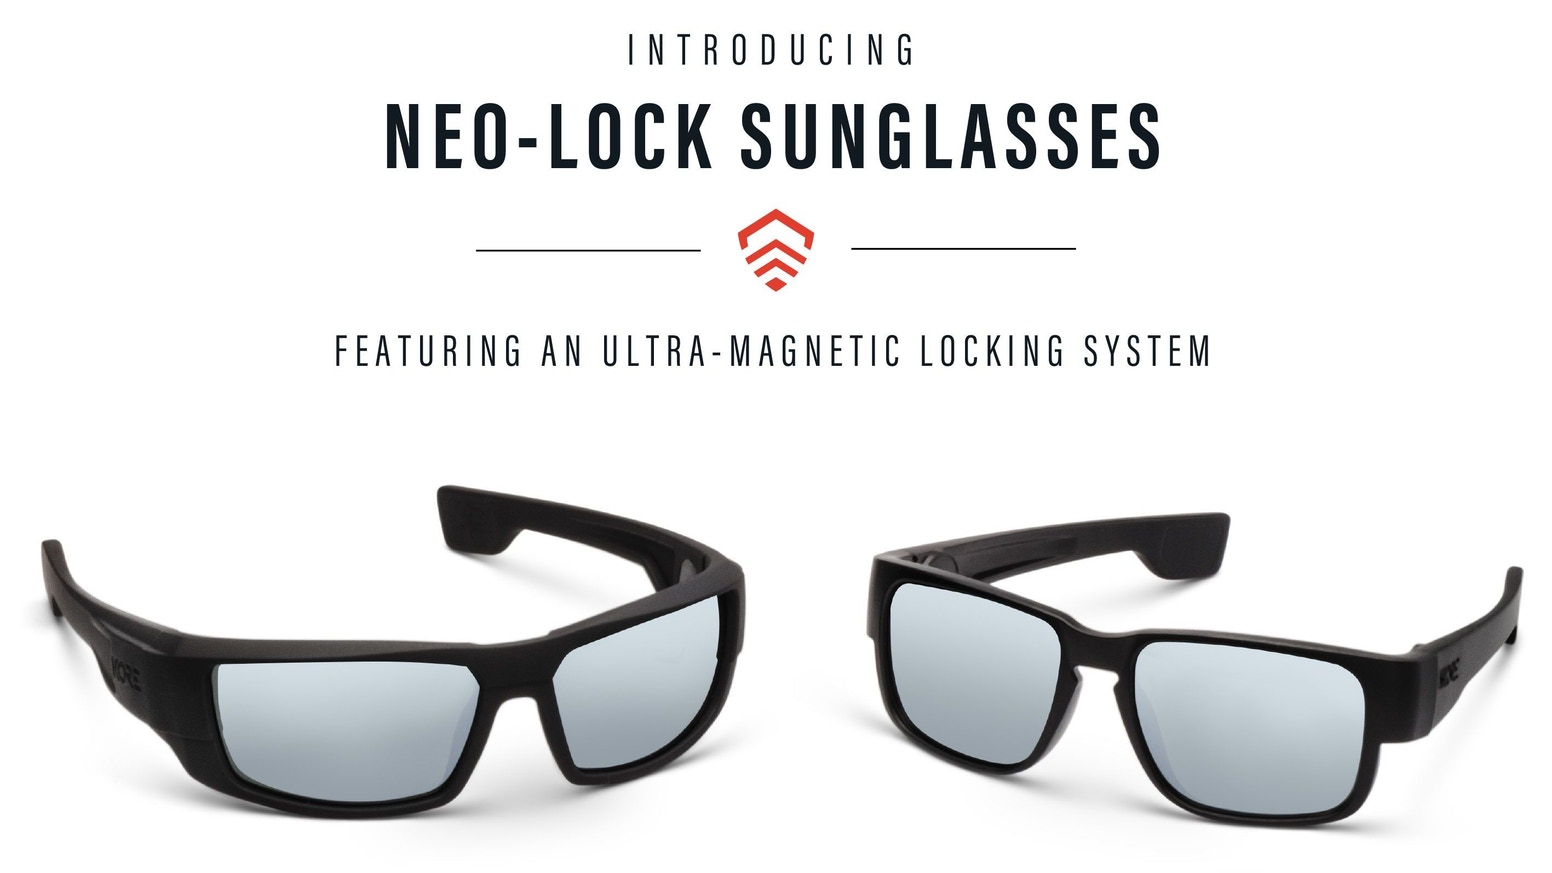 KORE Neo-Lock Sunglasses use Smart Magnets to lock your glasses in place. Never loose your glasses again.